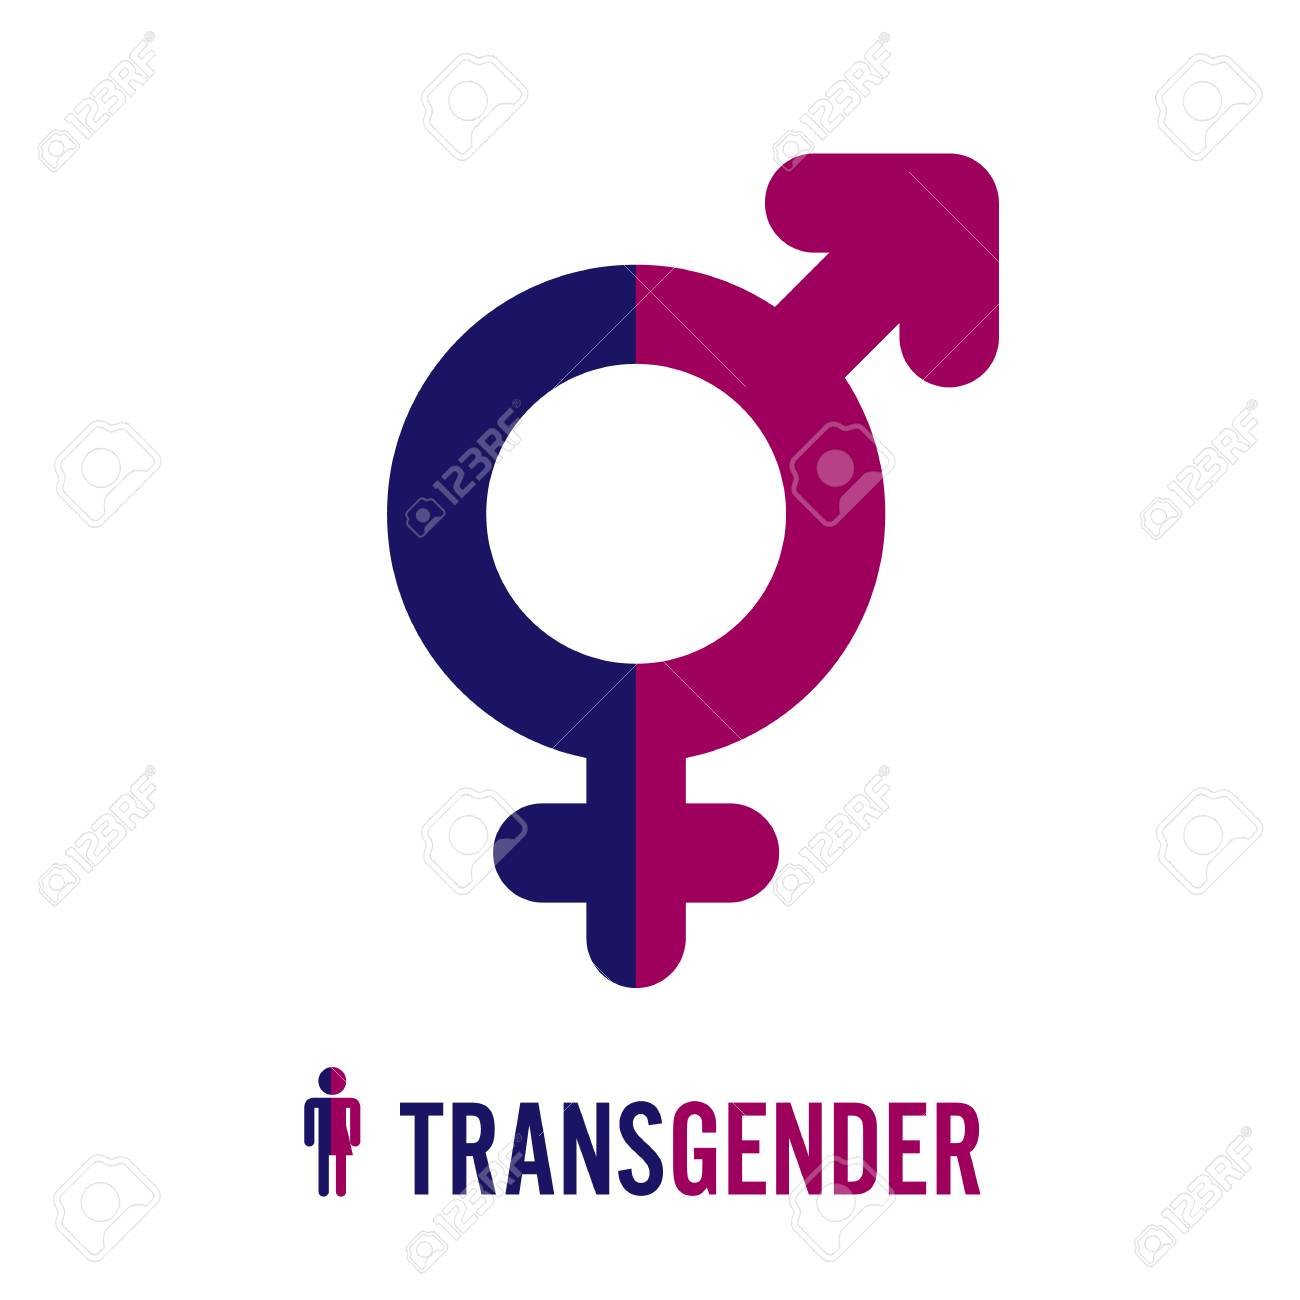 transgender icon symbol combining gender symbols male and female royalty free cliparts vectors and stock illustration image 72911073 transgender icon symbol combining gender symbols male and female